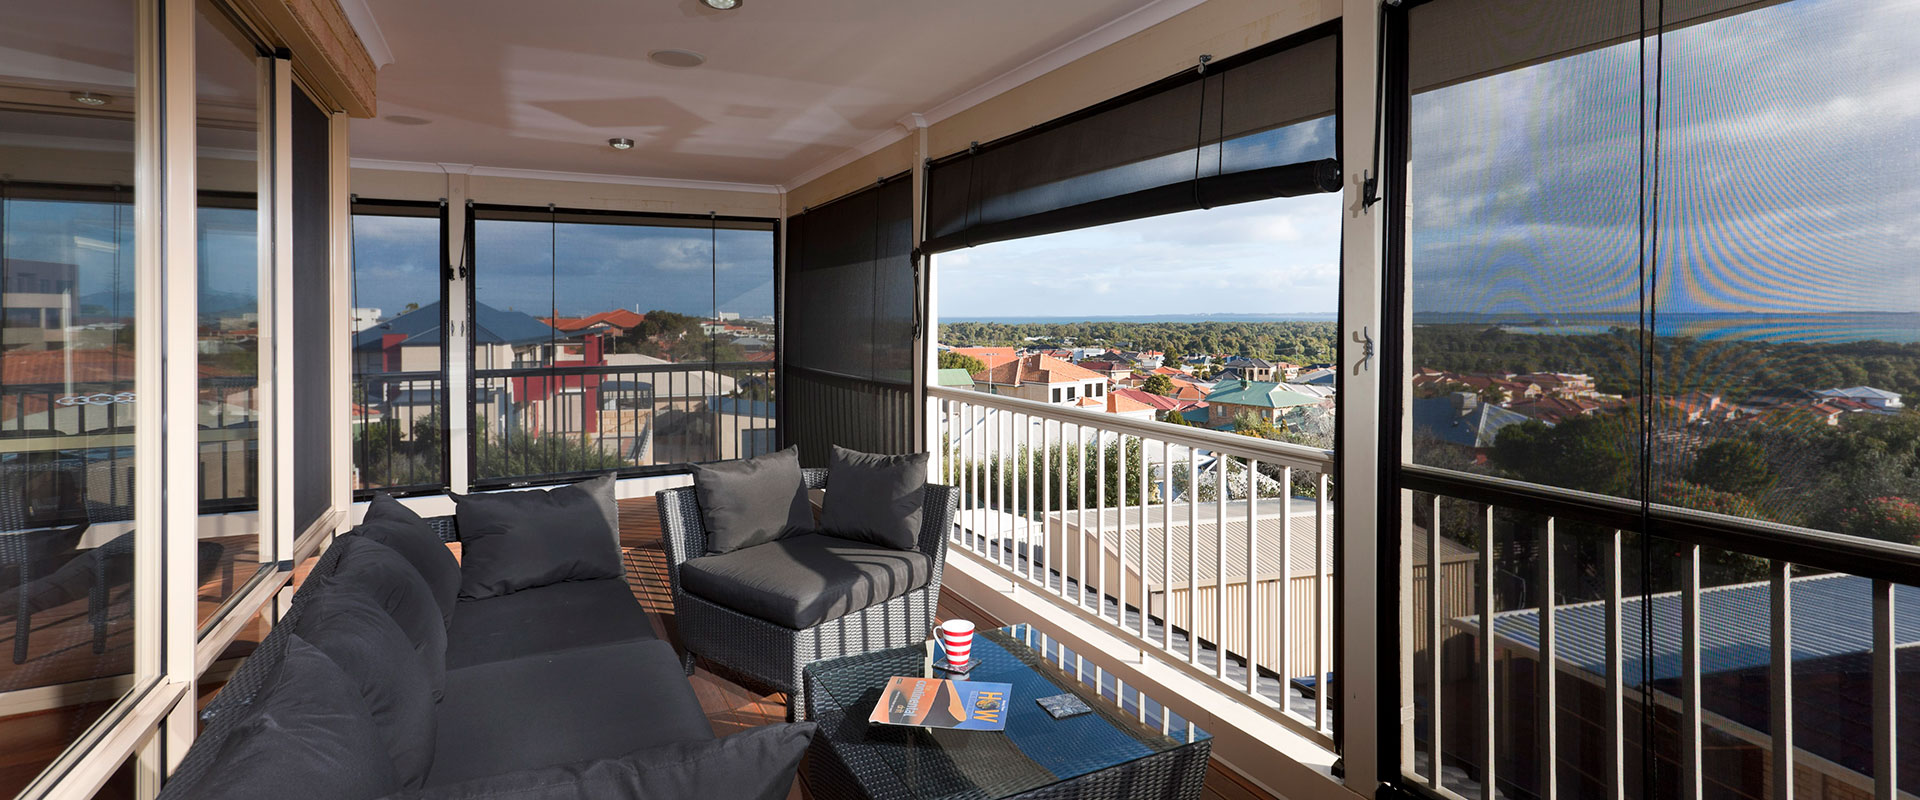 balcony-cafe-blinds-adelaide-outdoor-setting